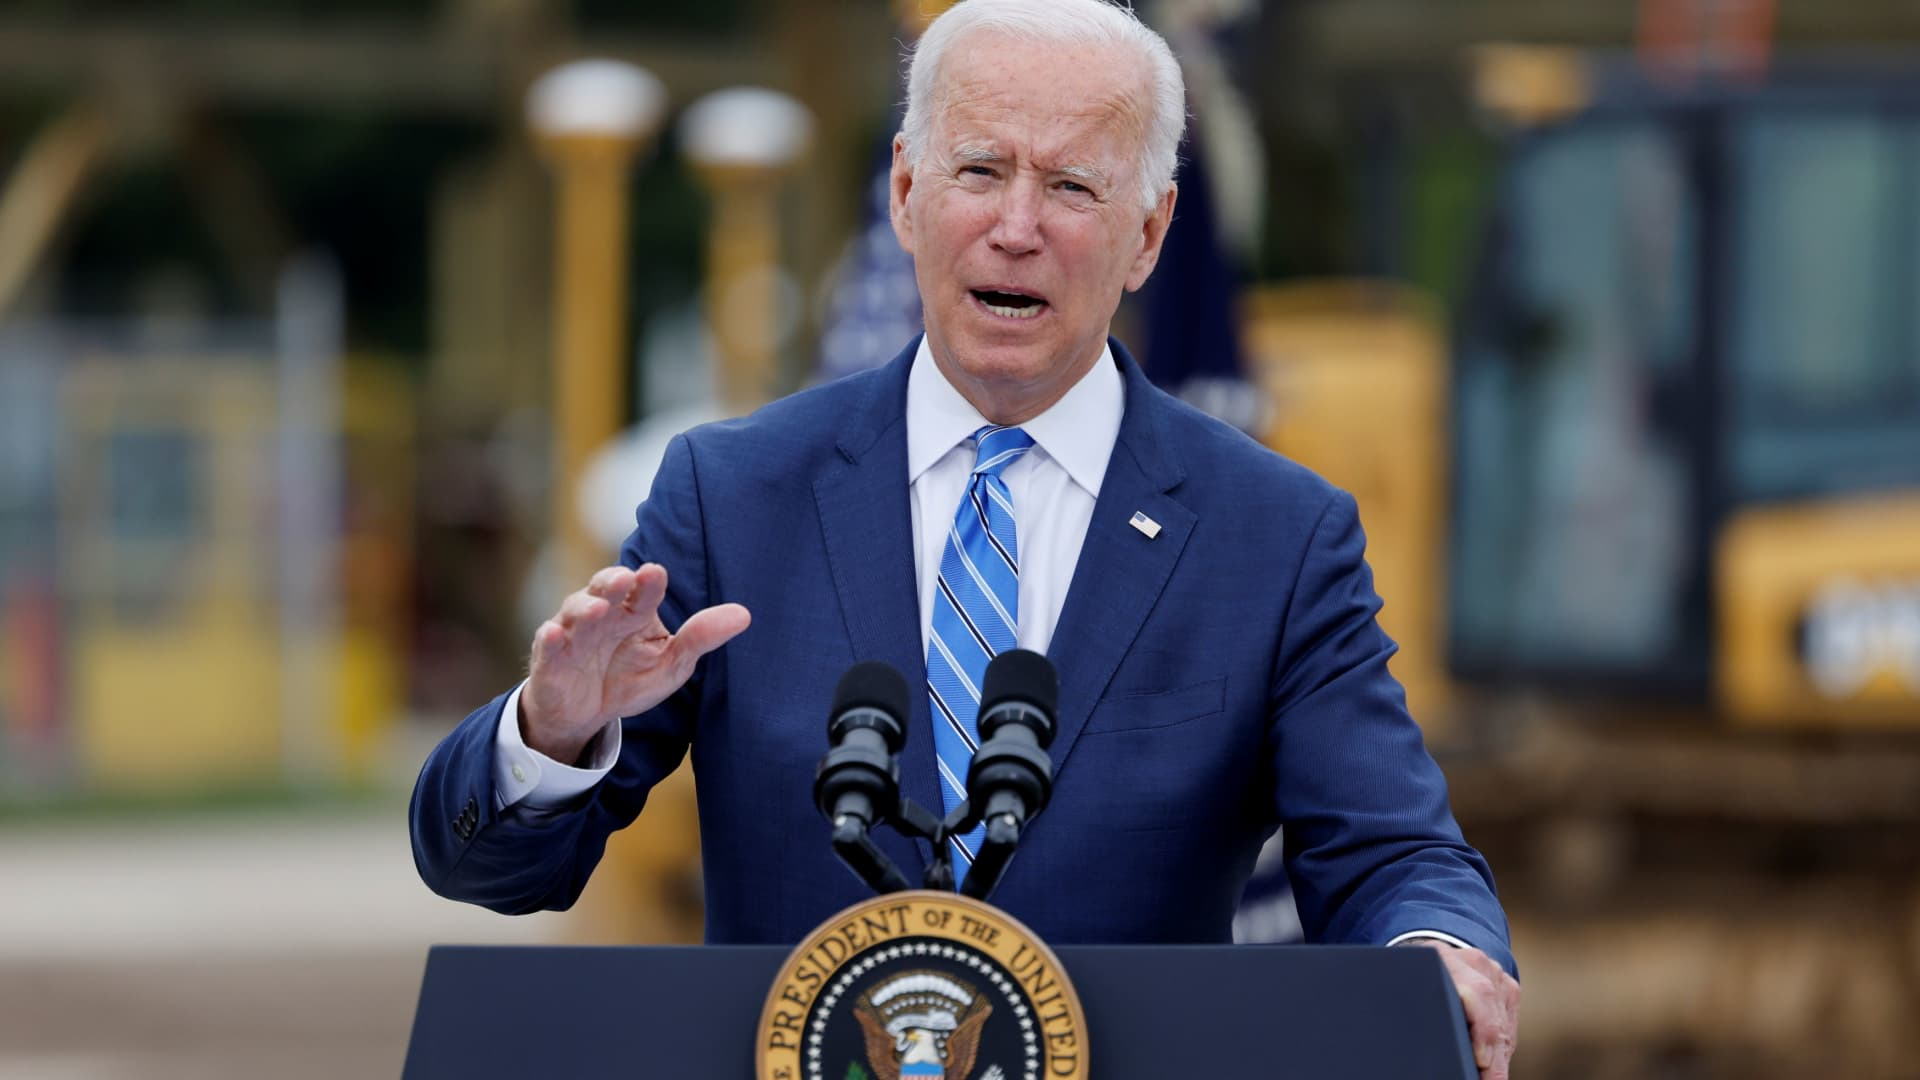 U.S. President Joe Biden delivers remarks on infrastructure investments at the International Union of Operating Engineers Local 324 training facility in Howell, Michigan, October 5, 2021.